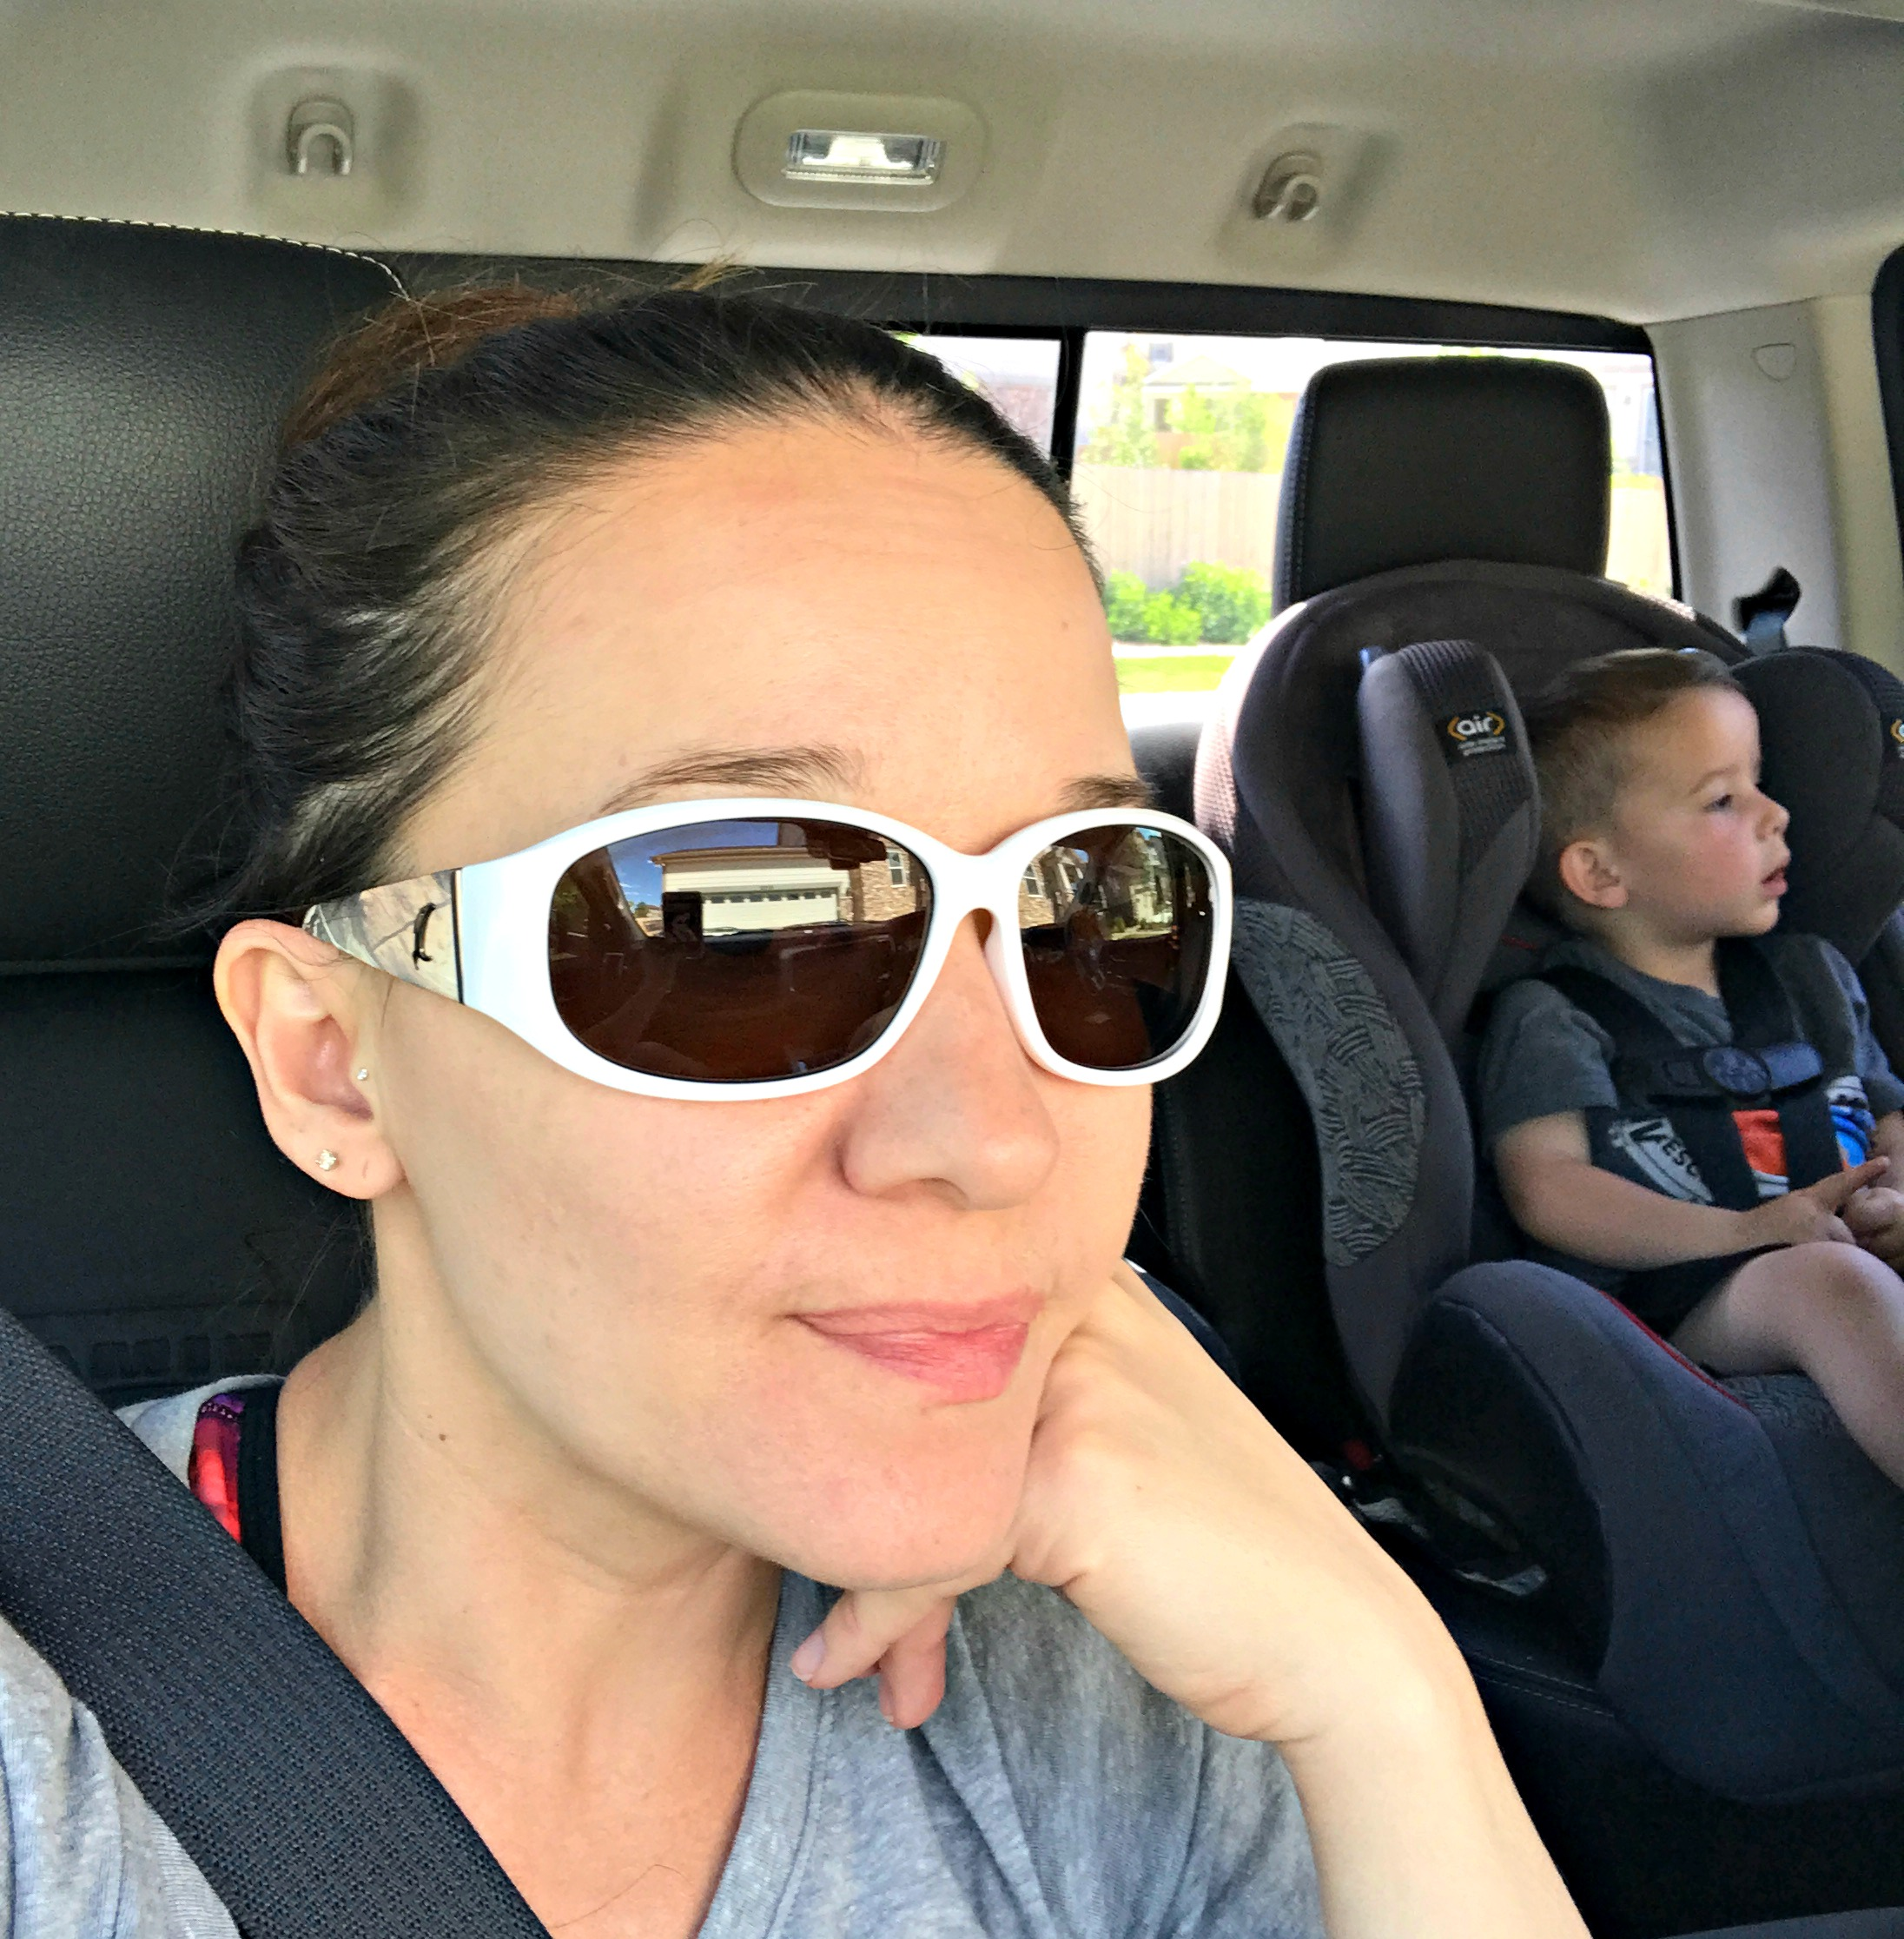 b87409bfa68d They re Xperio UV polarized sun lenses that both protect your eyes and  complete your style! (My current style is MOM Style…lol. Running around  town with my ...